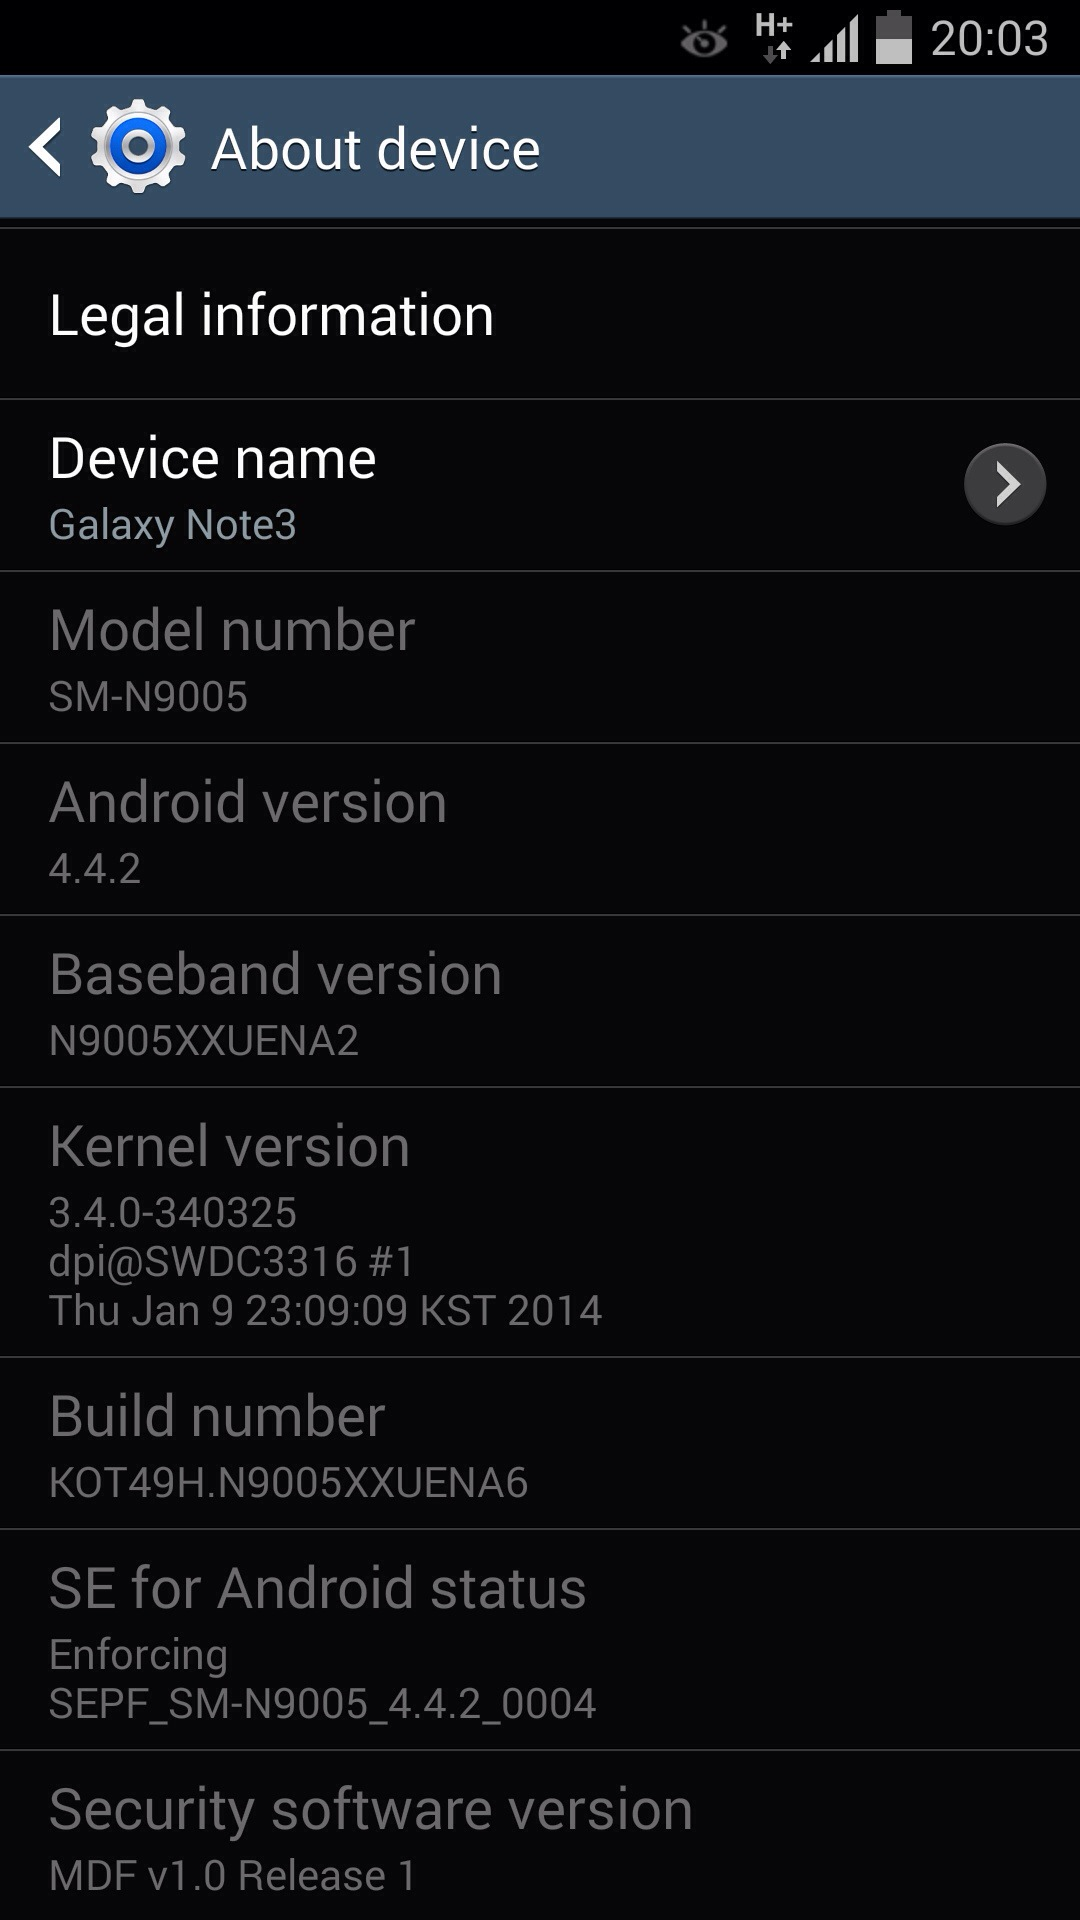 20140113 031130 - LEAKED : Galaxy Note 3 Android 4.4 KitKat Test firmware